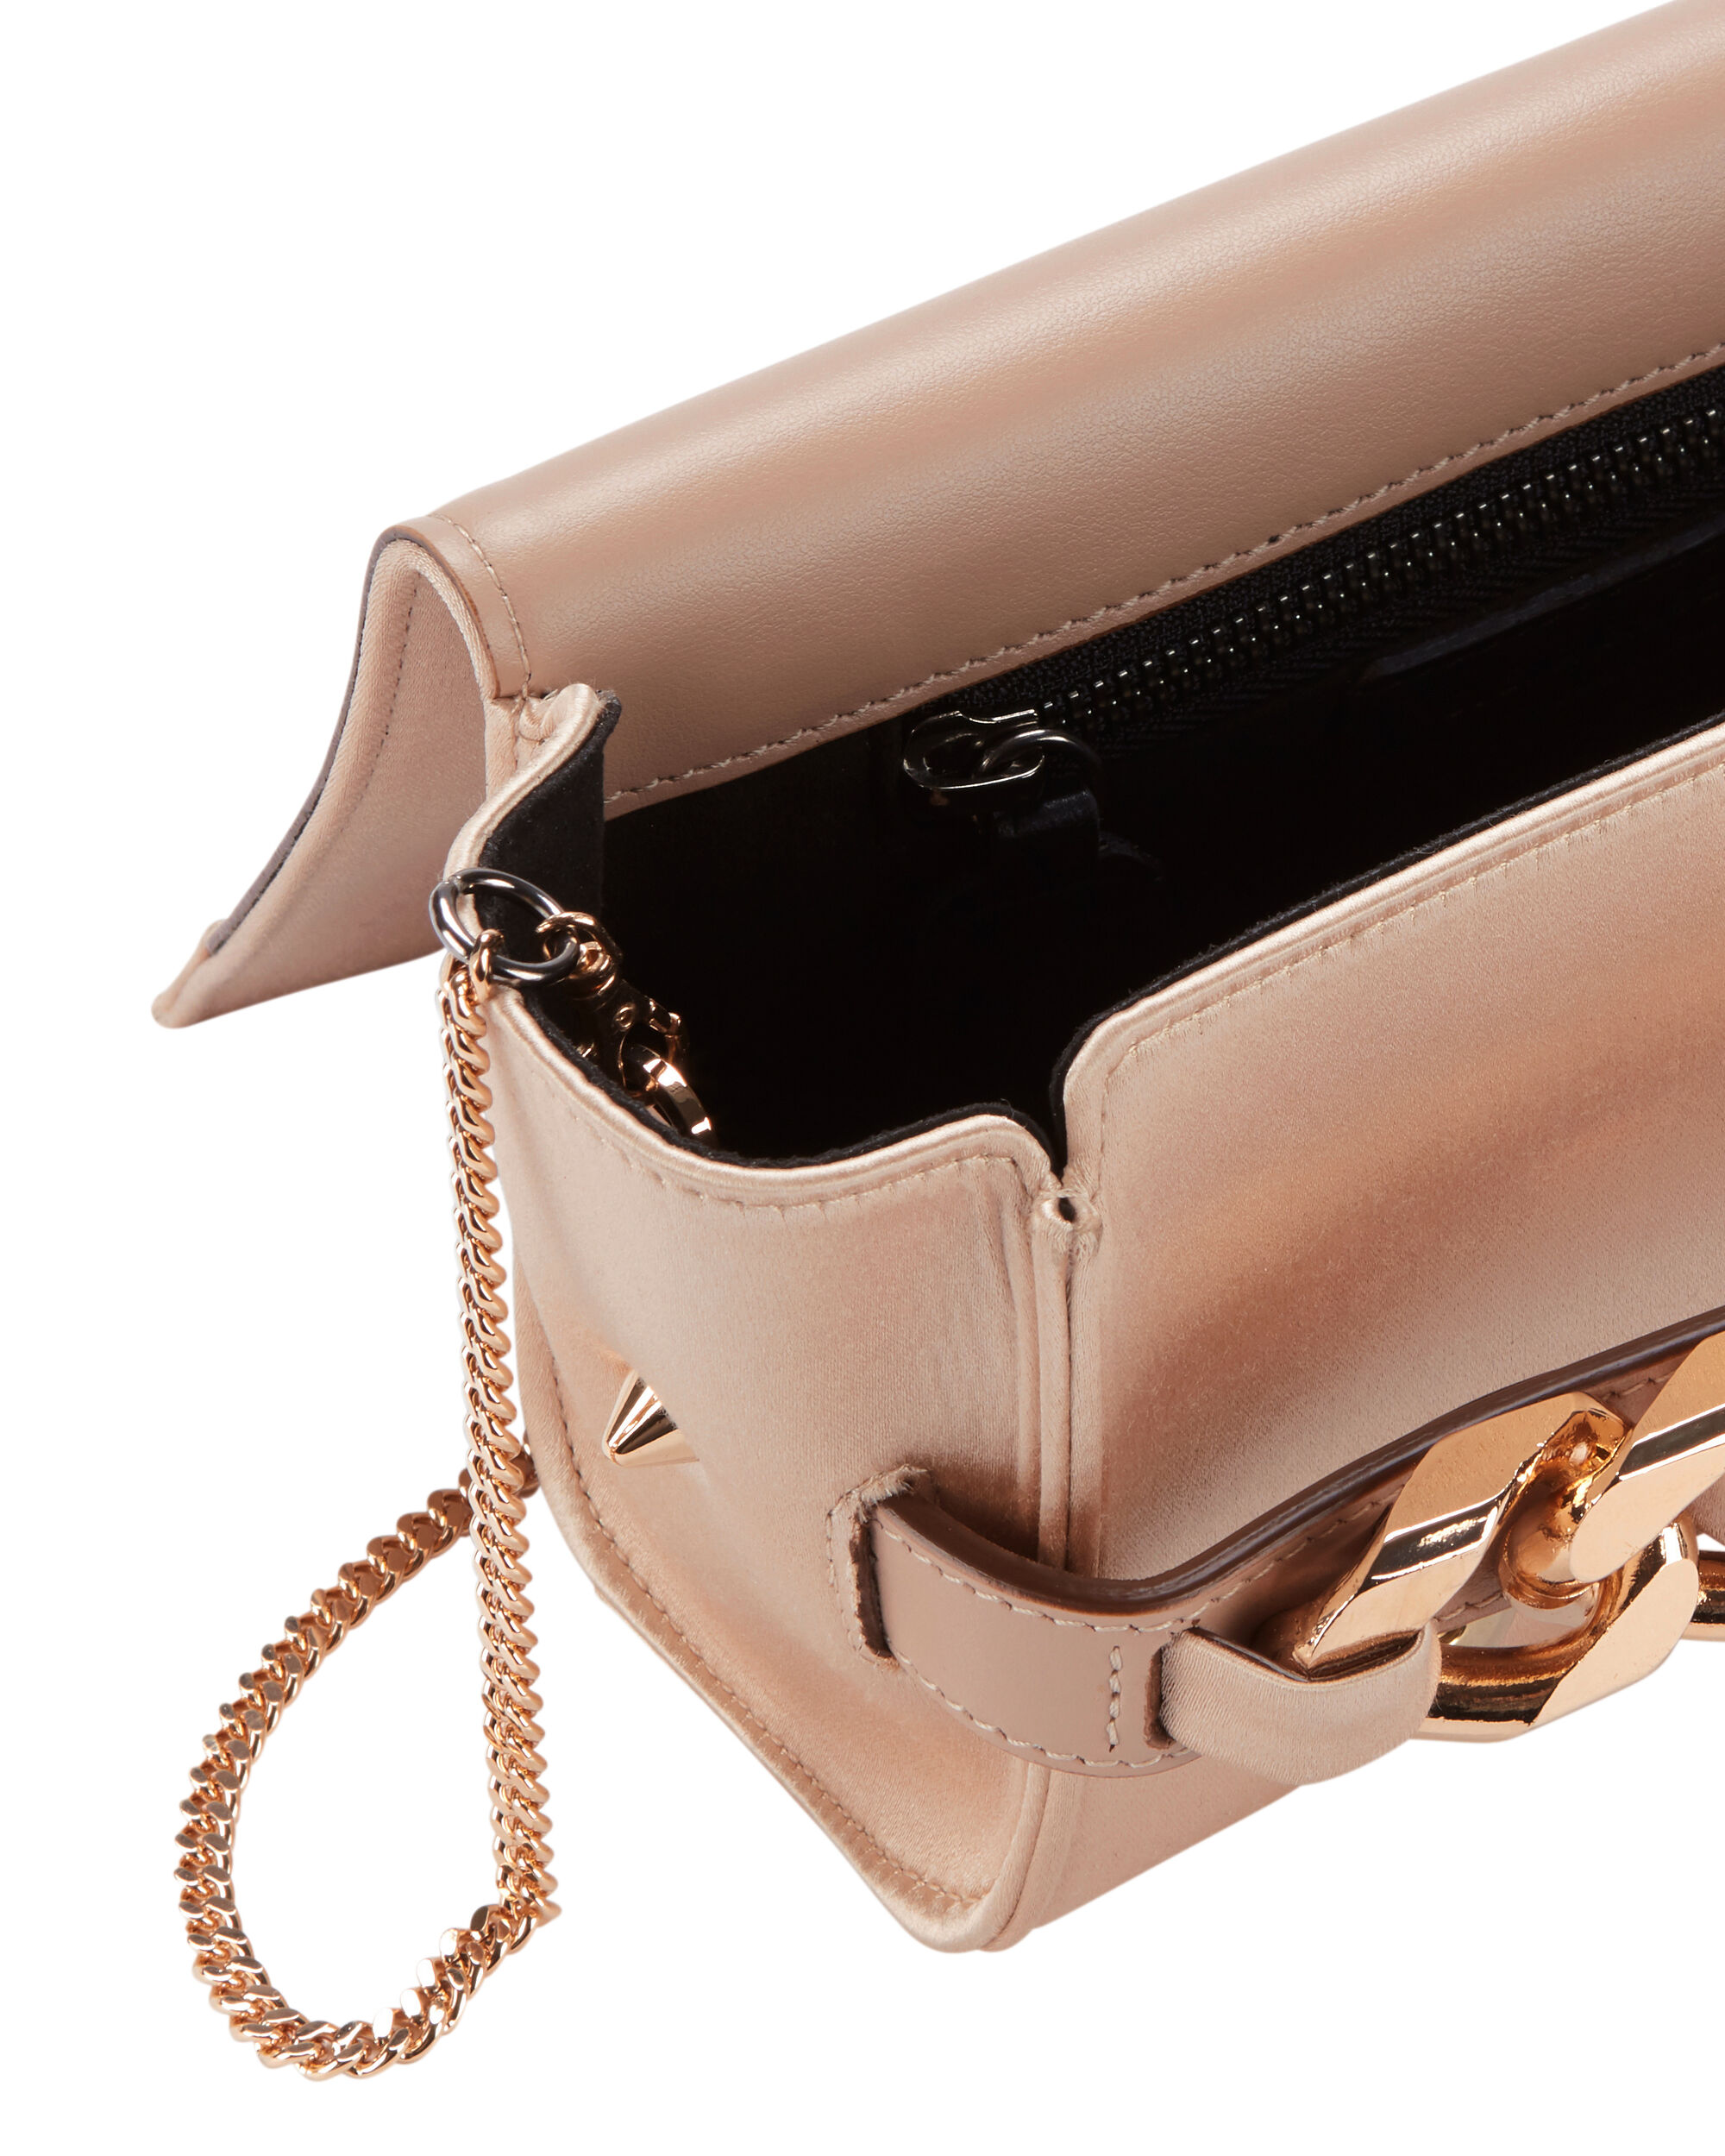 Satin Rose Gold Chain Clutch Bag, NUDE, hi-res